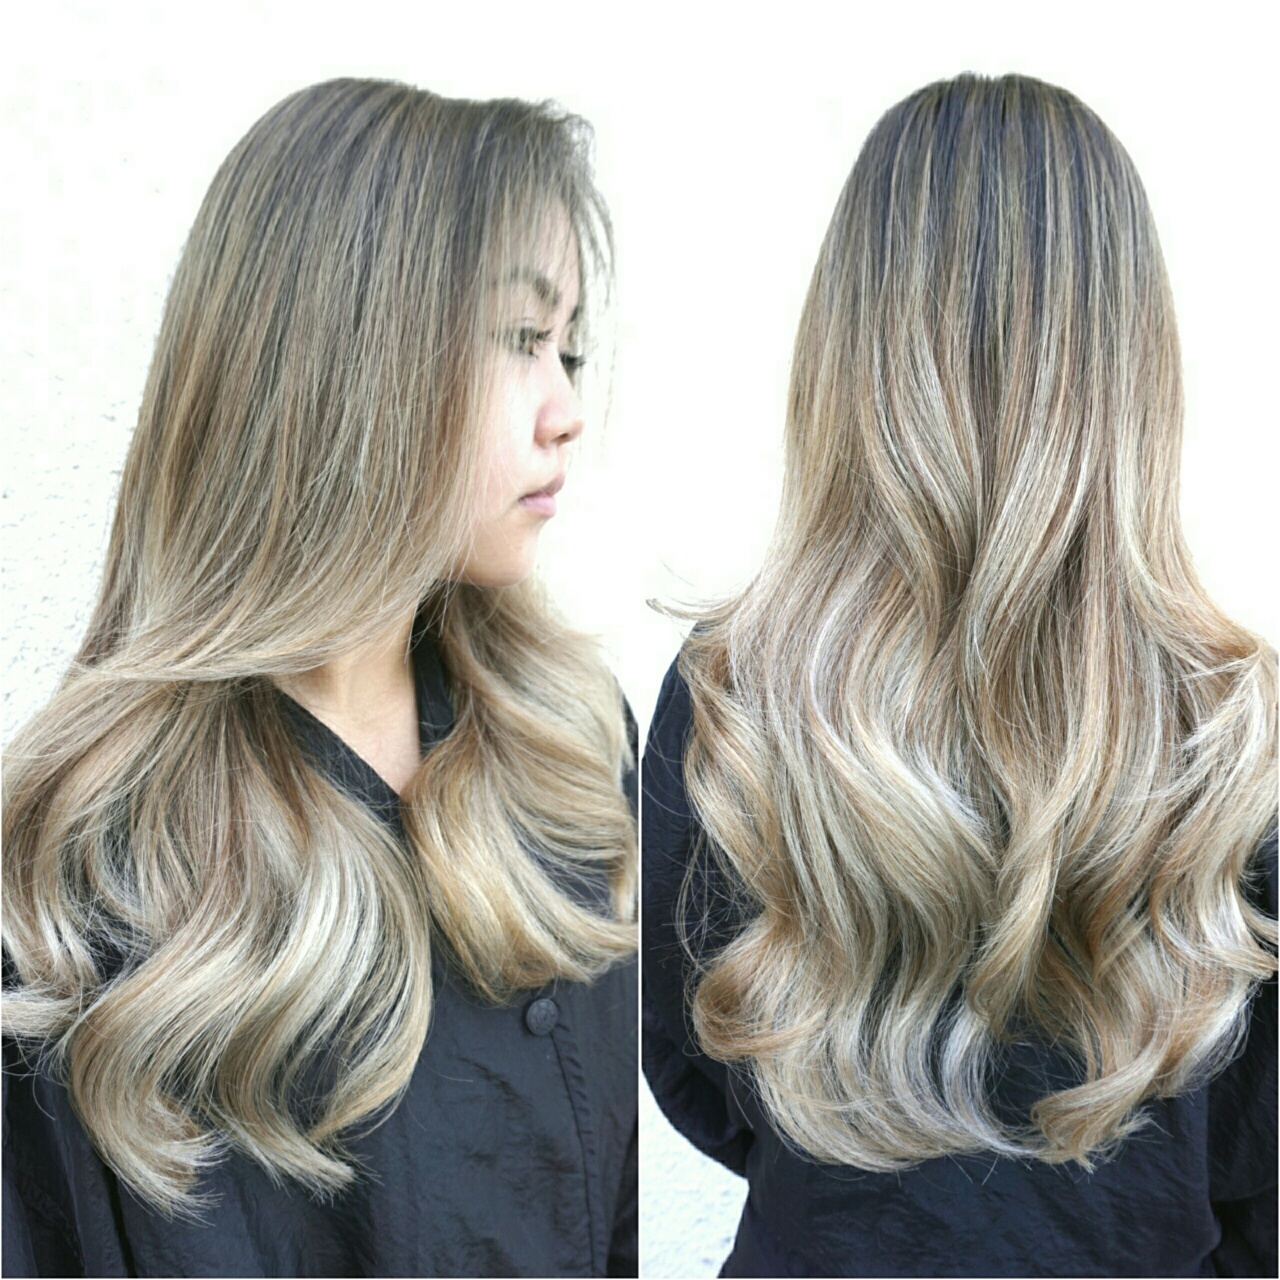 TRANSFORMATION: Banded Old Ombre To Steely Blonde Sombre - Career - Modern Salon